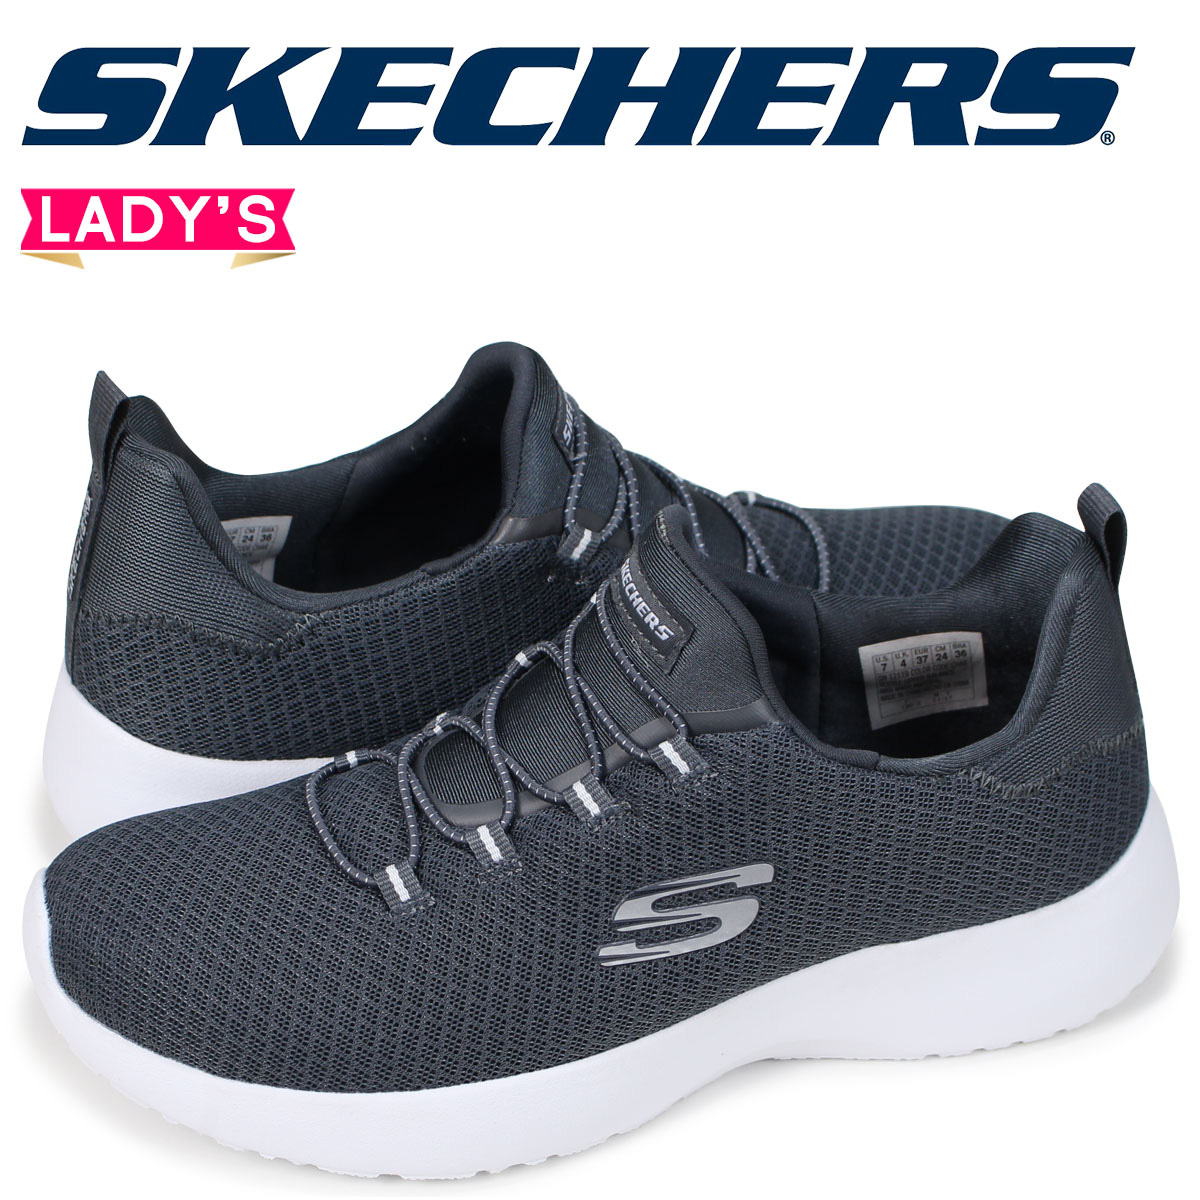 9ff0767bc0c  brand SKECHERS with drawing a new style to sketch it as a concept